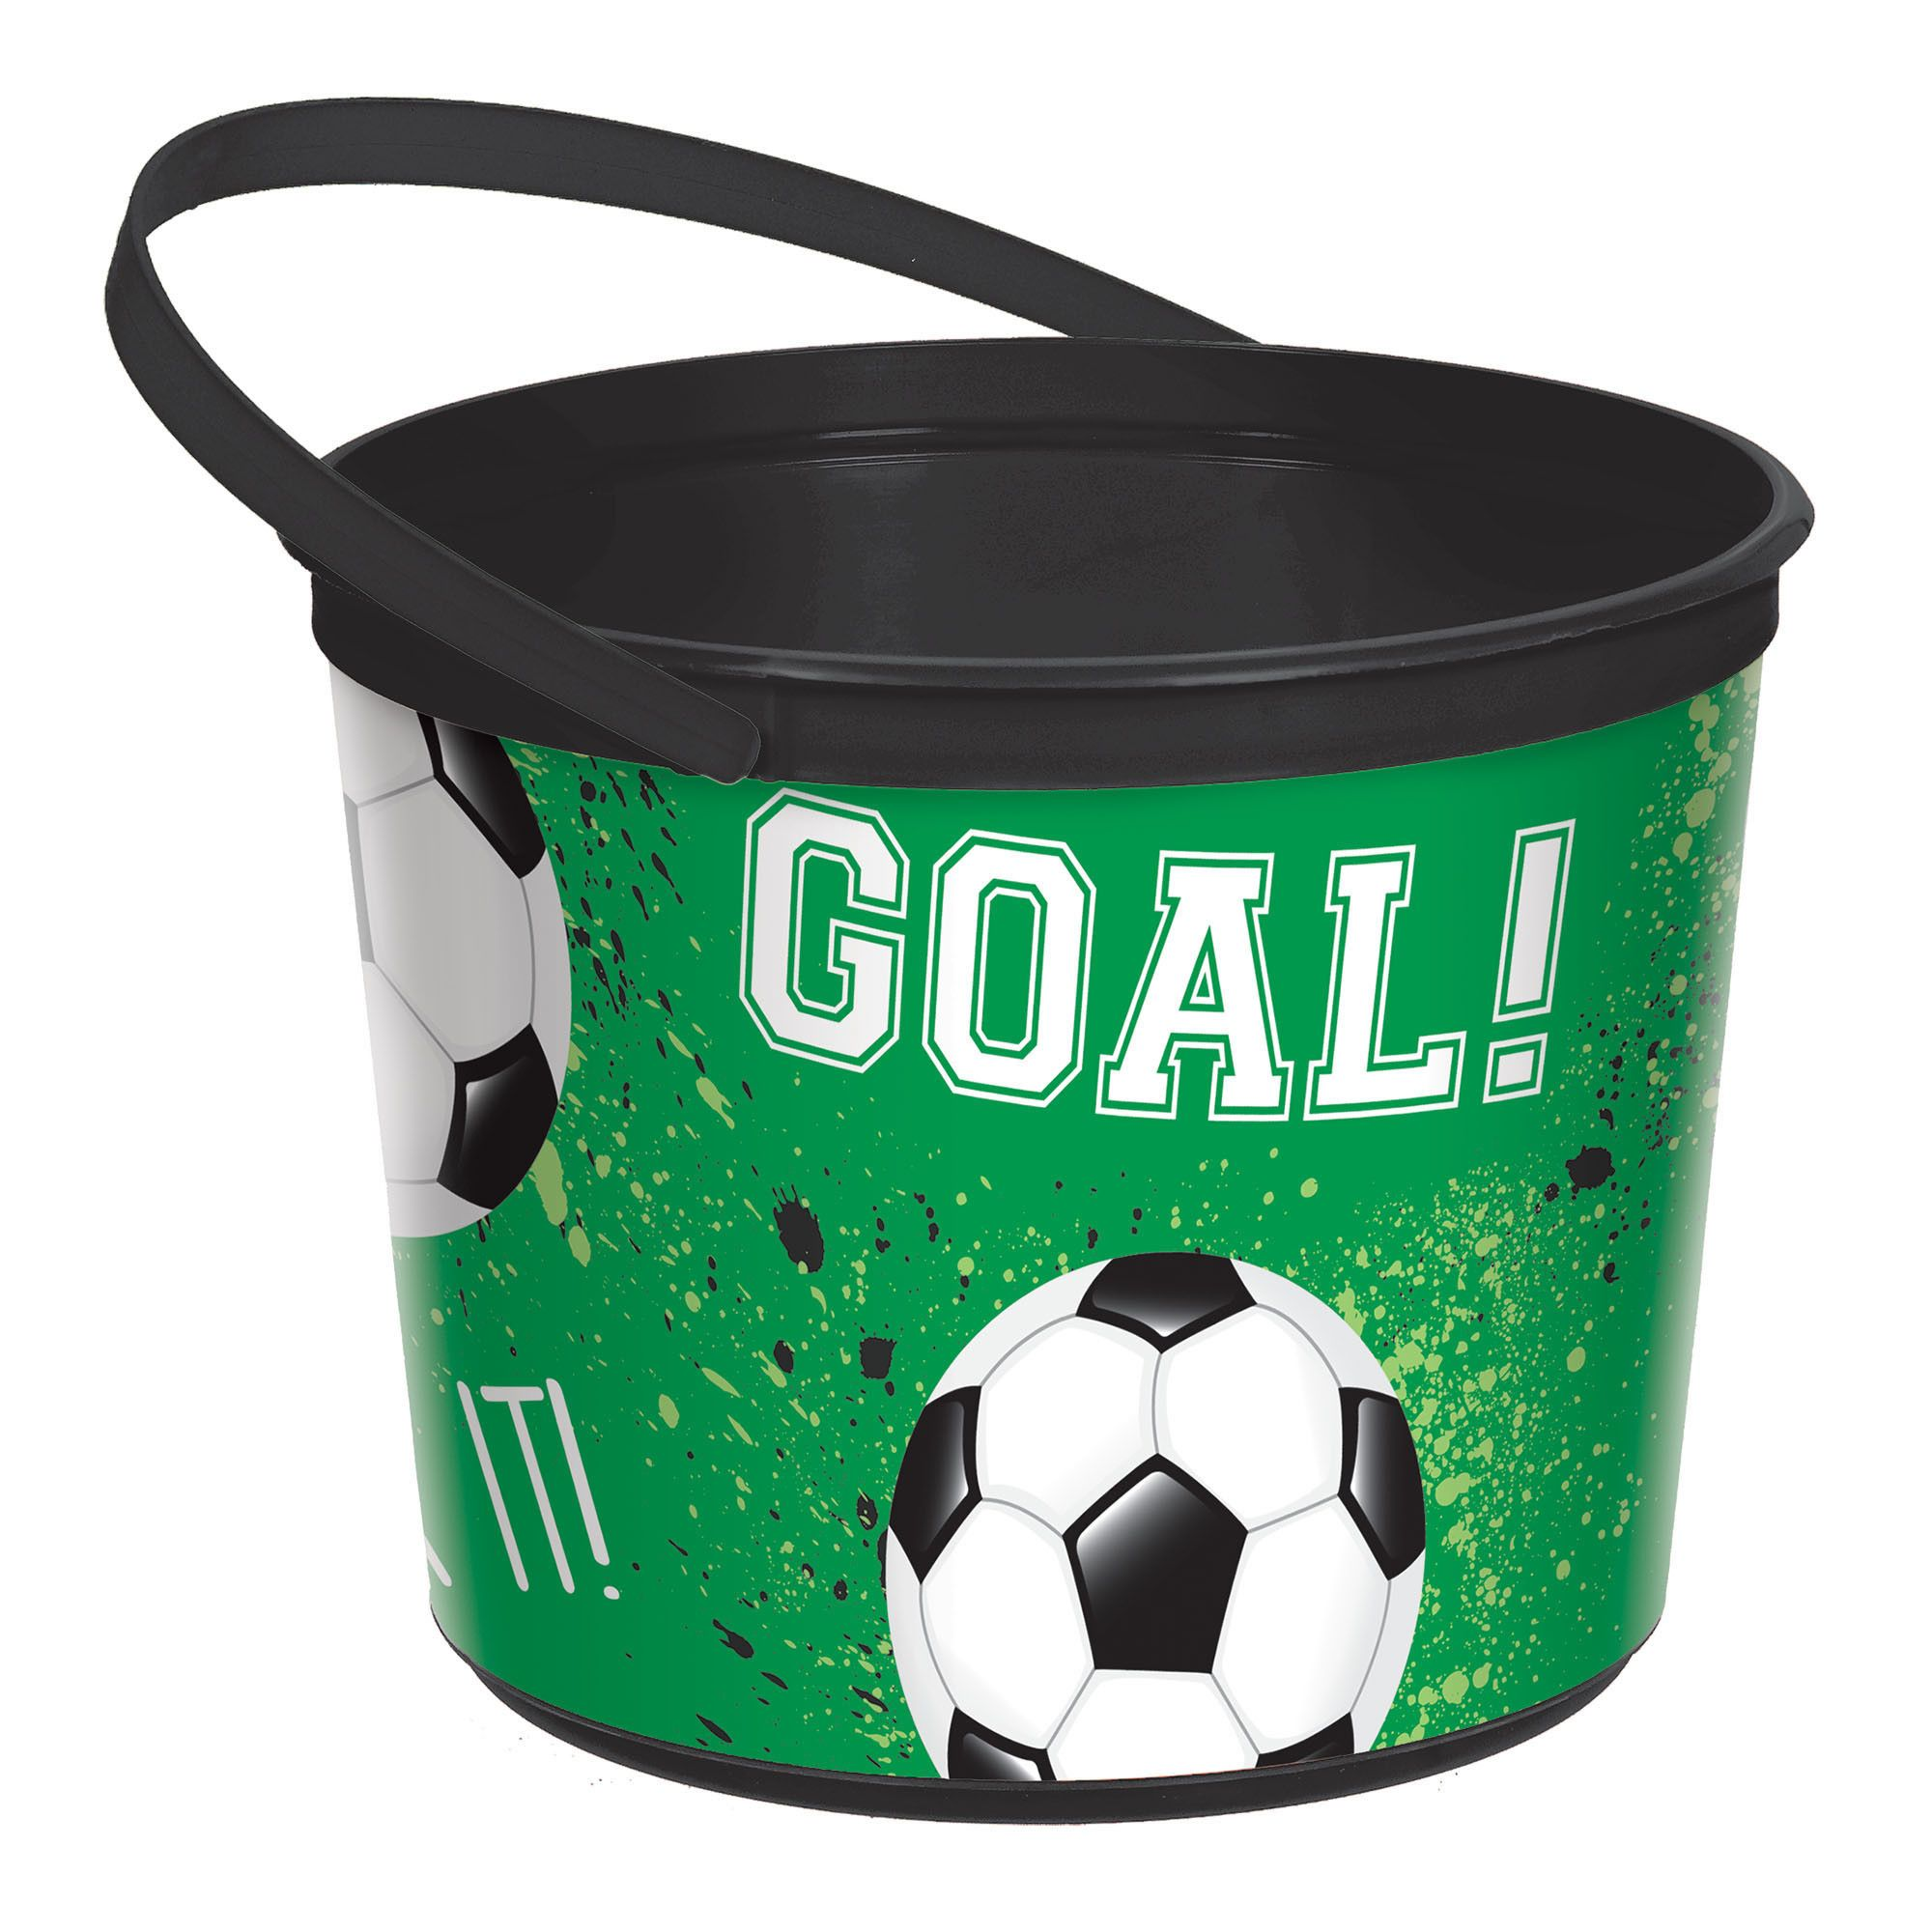 Goal Getter Favor Container